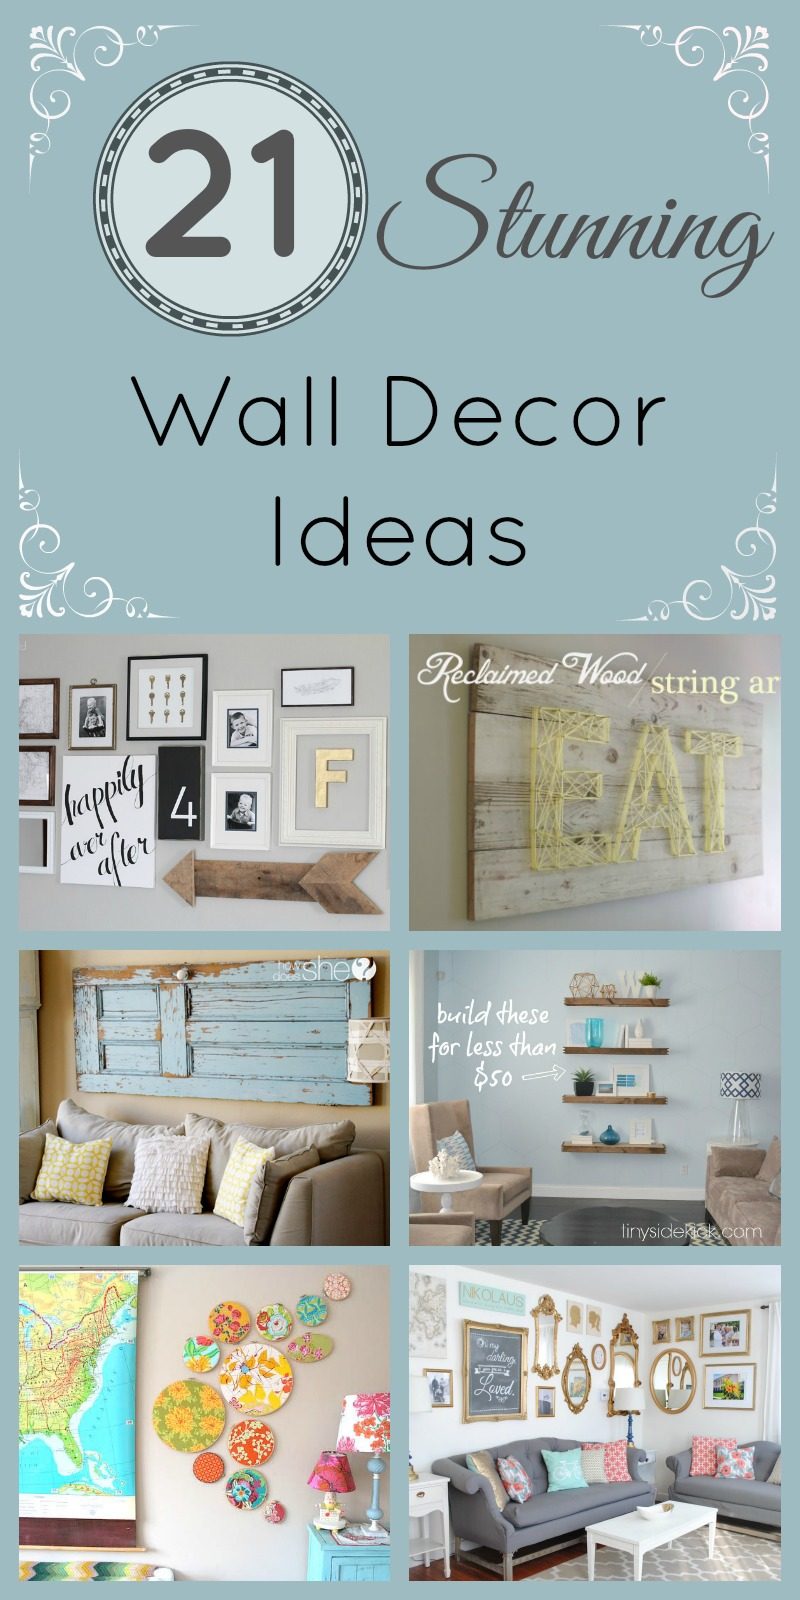 21 Stunning Wall Decor Ideas How Does She